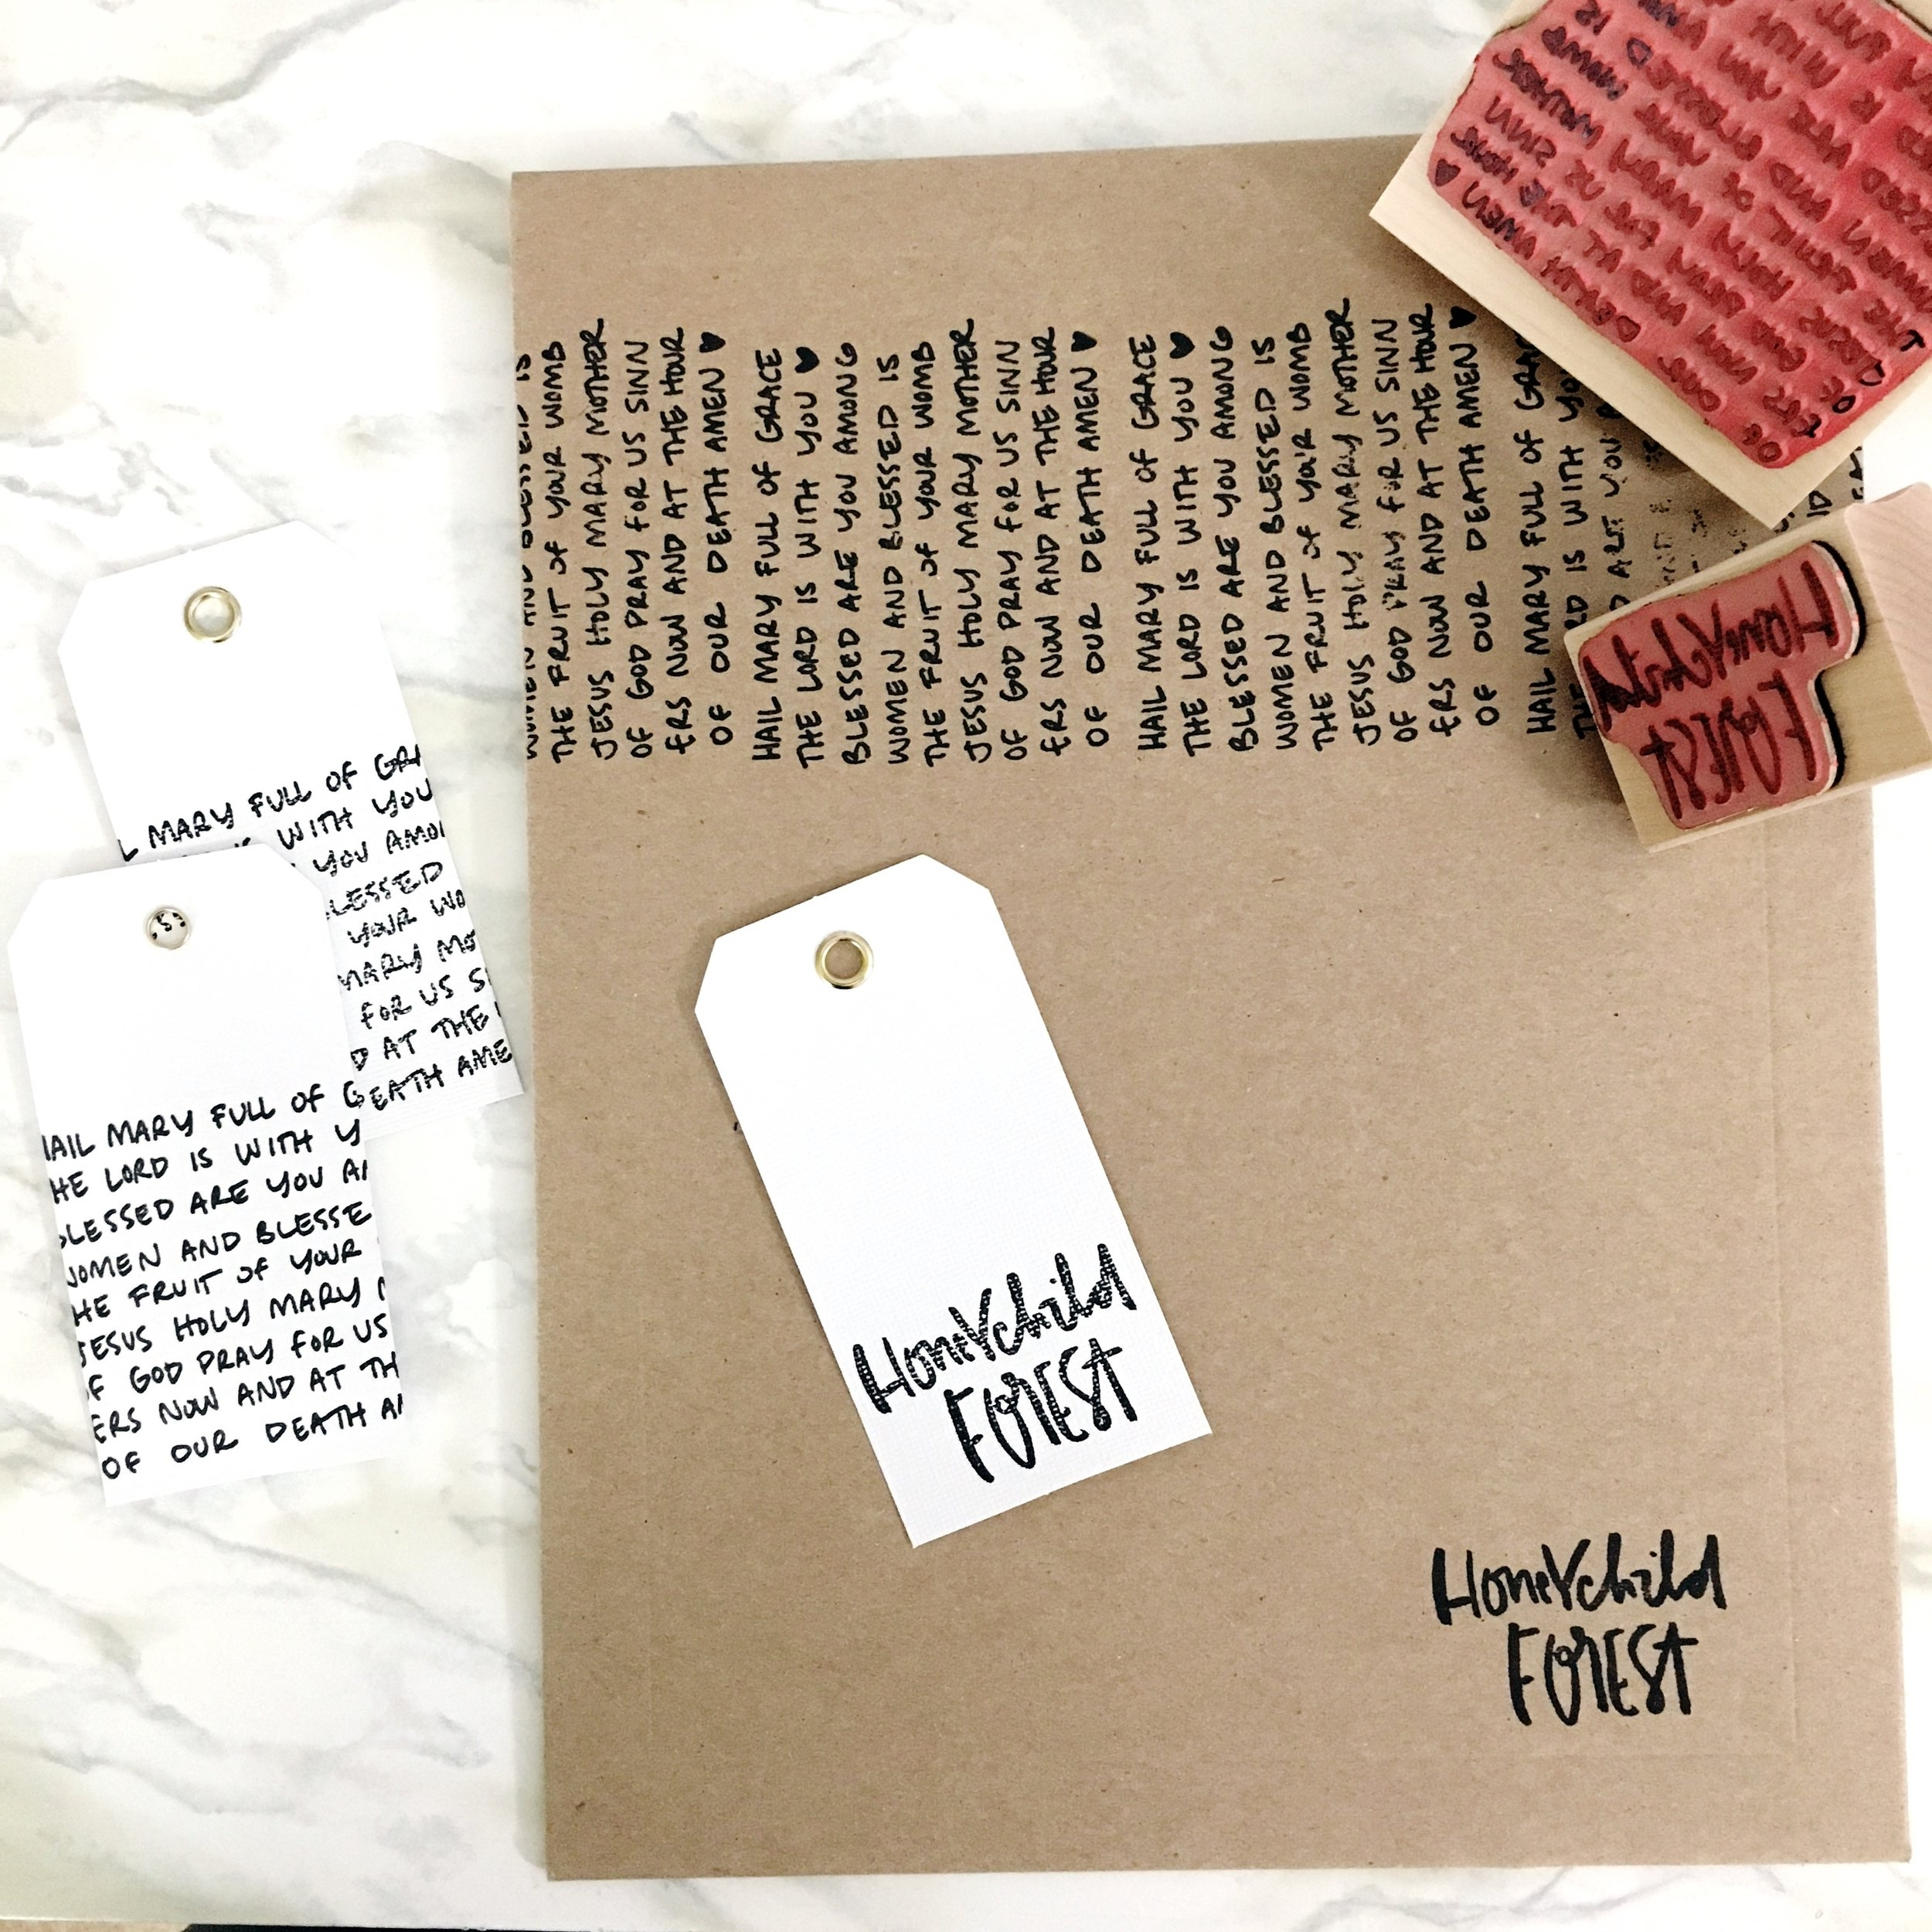 Creatiate Stamps Packaging Ideas - The Creatiate DIY Blog _0463.jpg